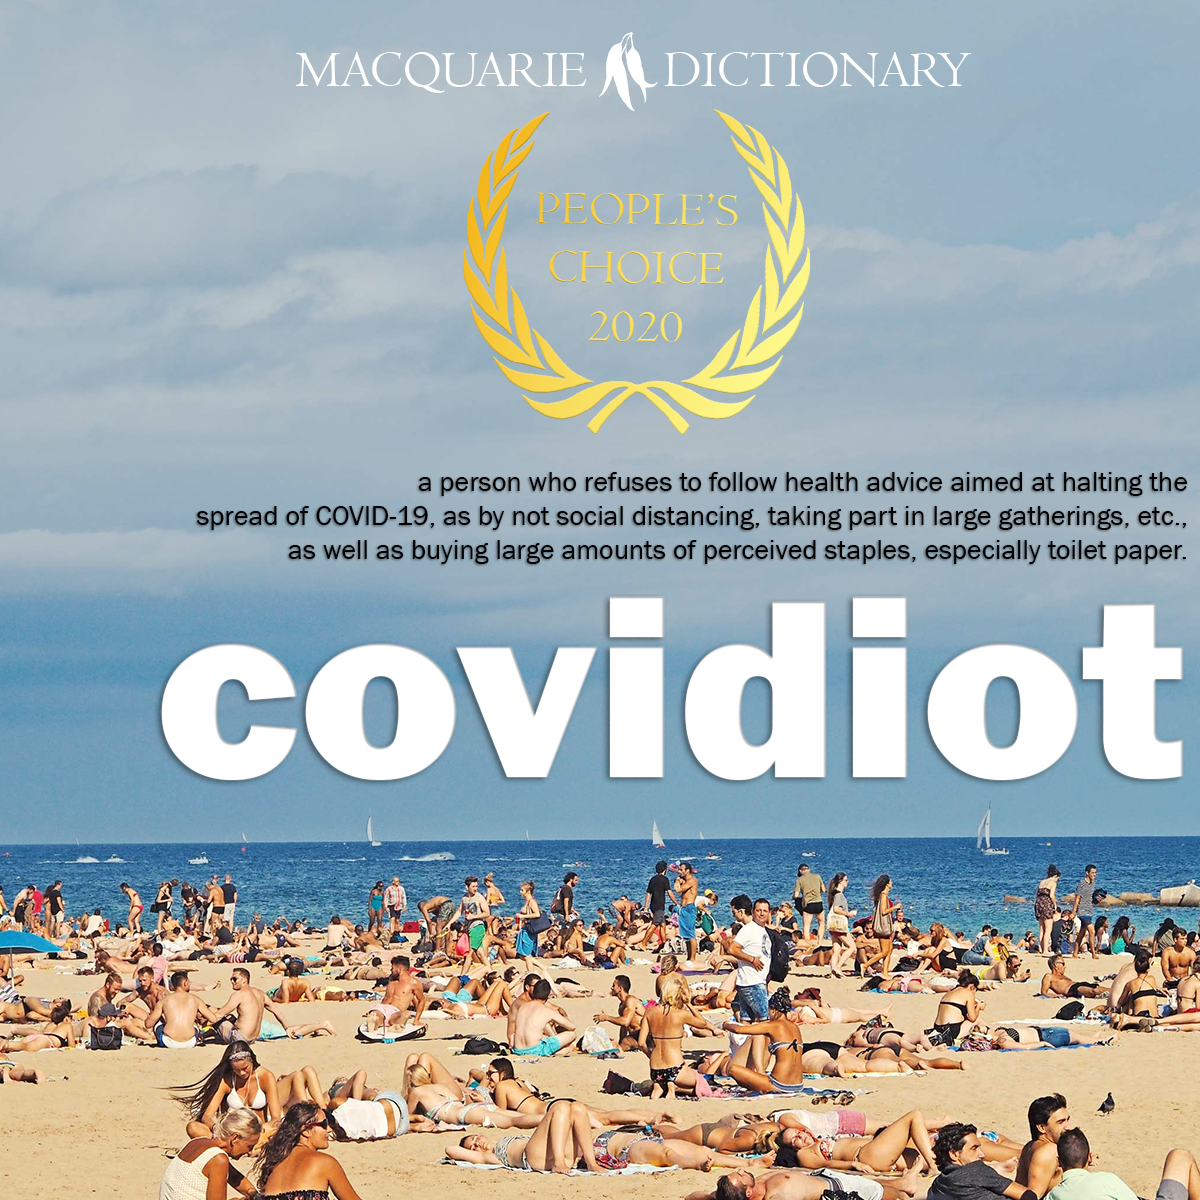 People's Choice Word of the Year 2020 covidiot COVID